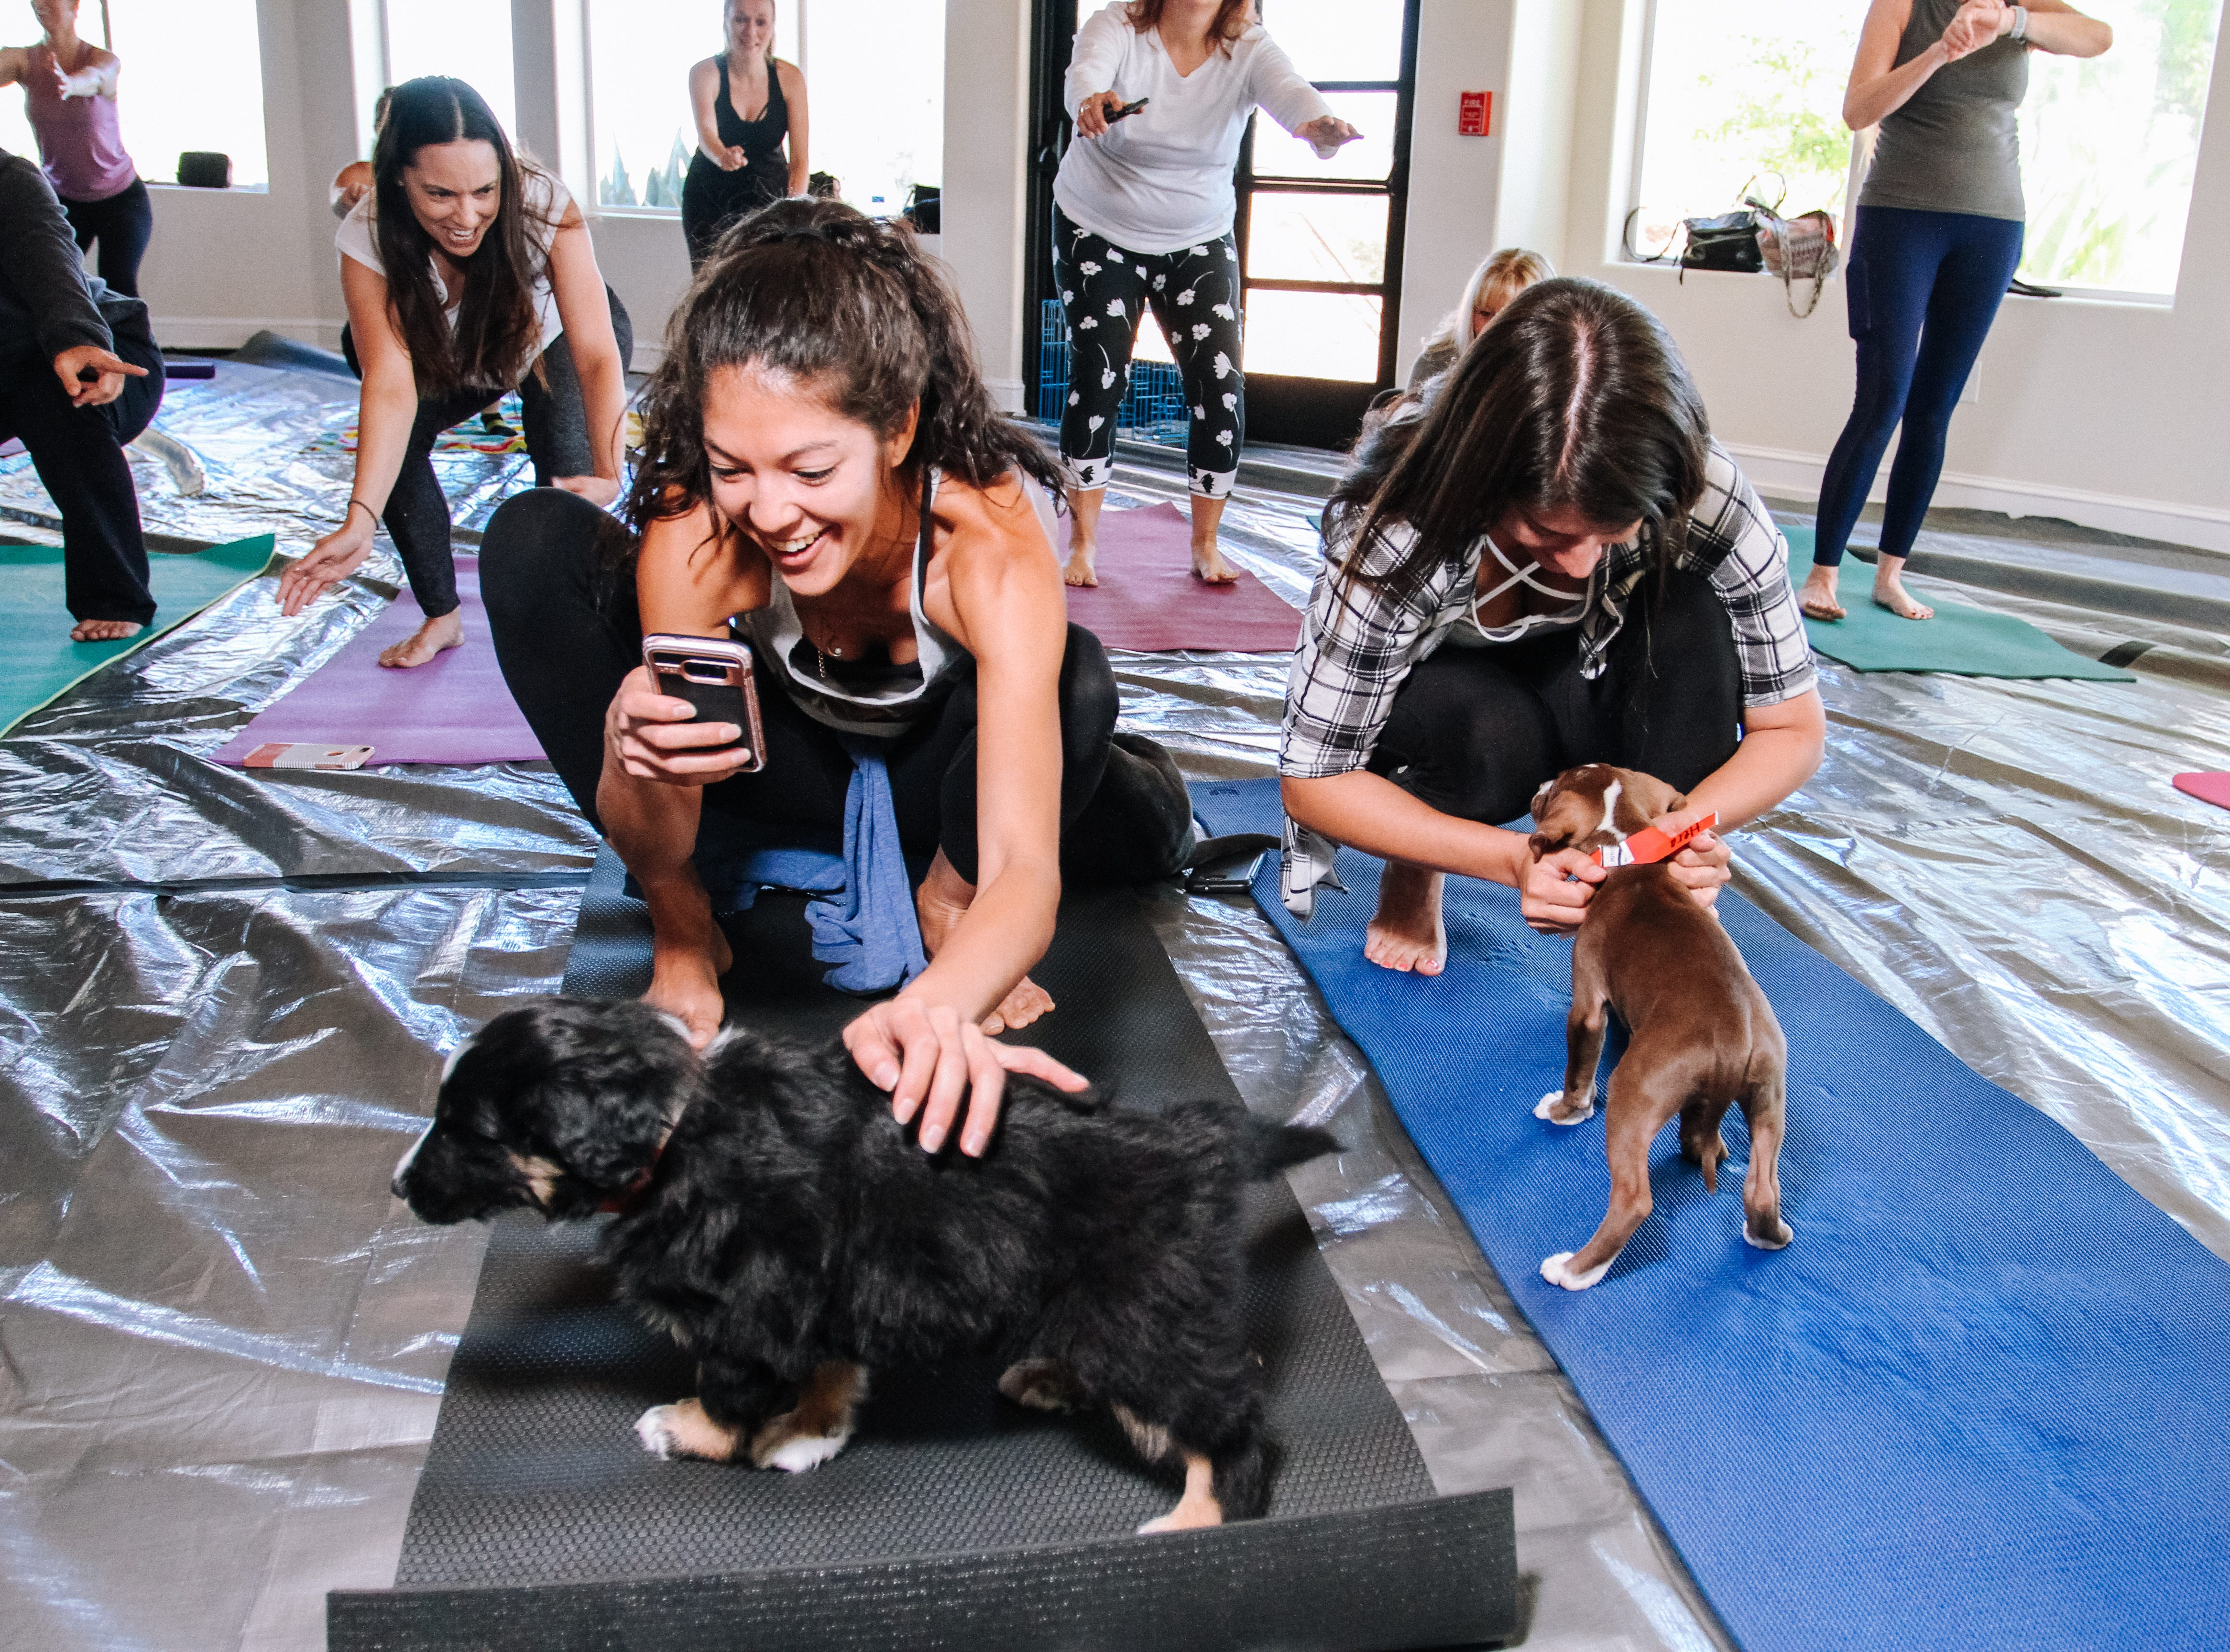 Tirzah Armenta plays with puppies at Puppies, Pilates and Prosecco, an event hosted by Almost There Foster Care at the Wrigley Mansion in Phoenix on April 13, 2019.